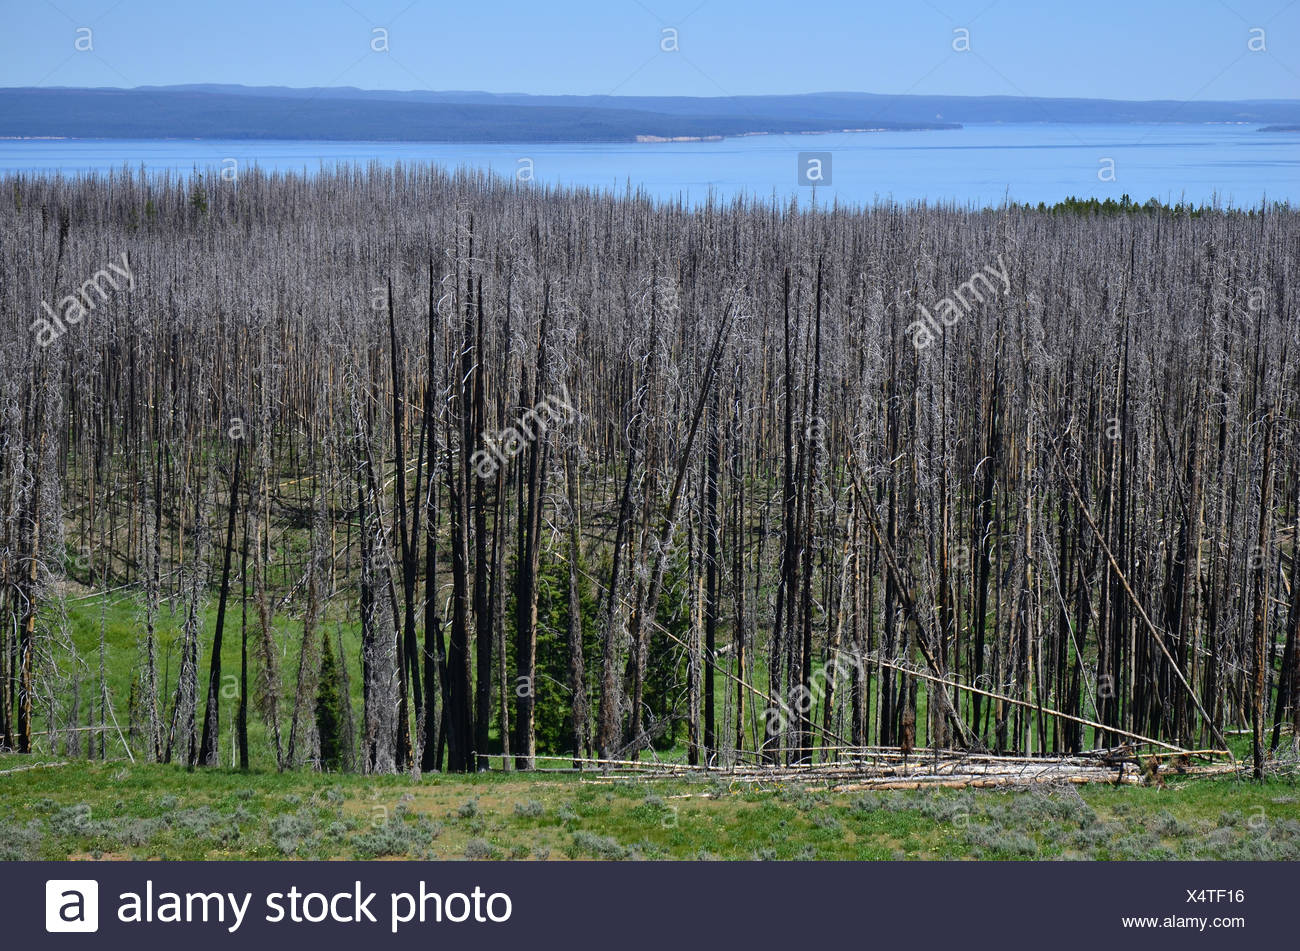 A ridge of dead pine trees, killed by mountain pine beetles, line the shore of Yellowstone Lake. - Stock Image